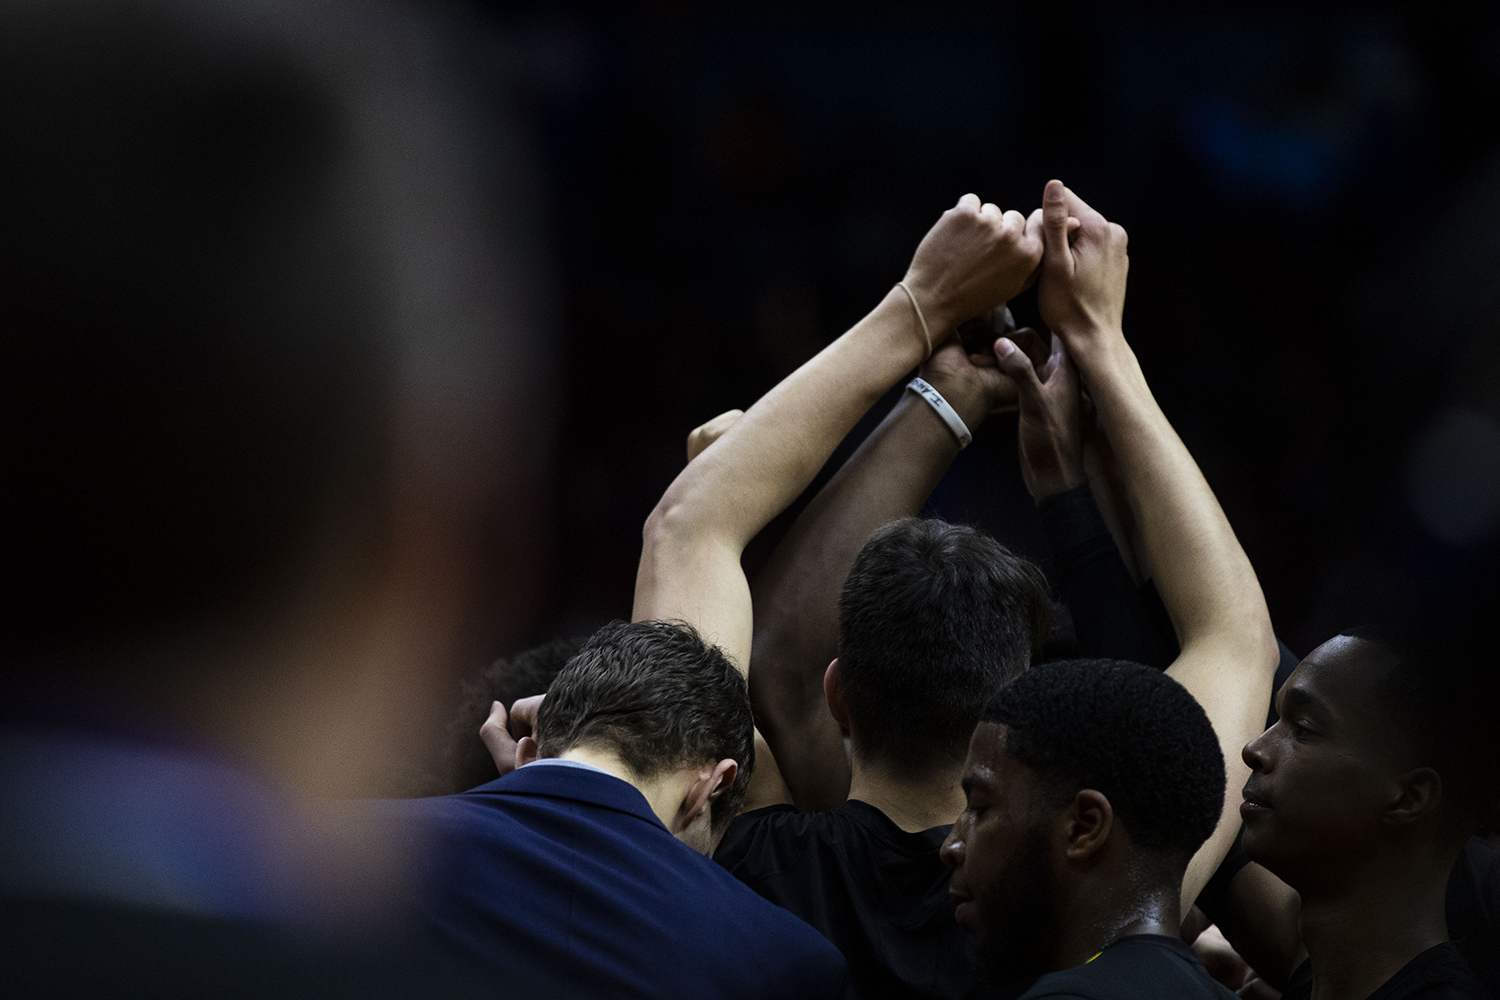 UNI+meets+in+a+huddle+during+the+Iowa%2FUNI+men%27s+basketball+game+at+Wells+Fargo+Arena+in+Des+Moines+on+Saturday%2C+Dec.+15%2C+2018.+The+Hawkeyes+defeated+the+Panthers%2C+77-54.+